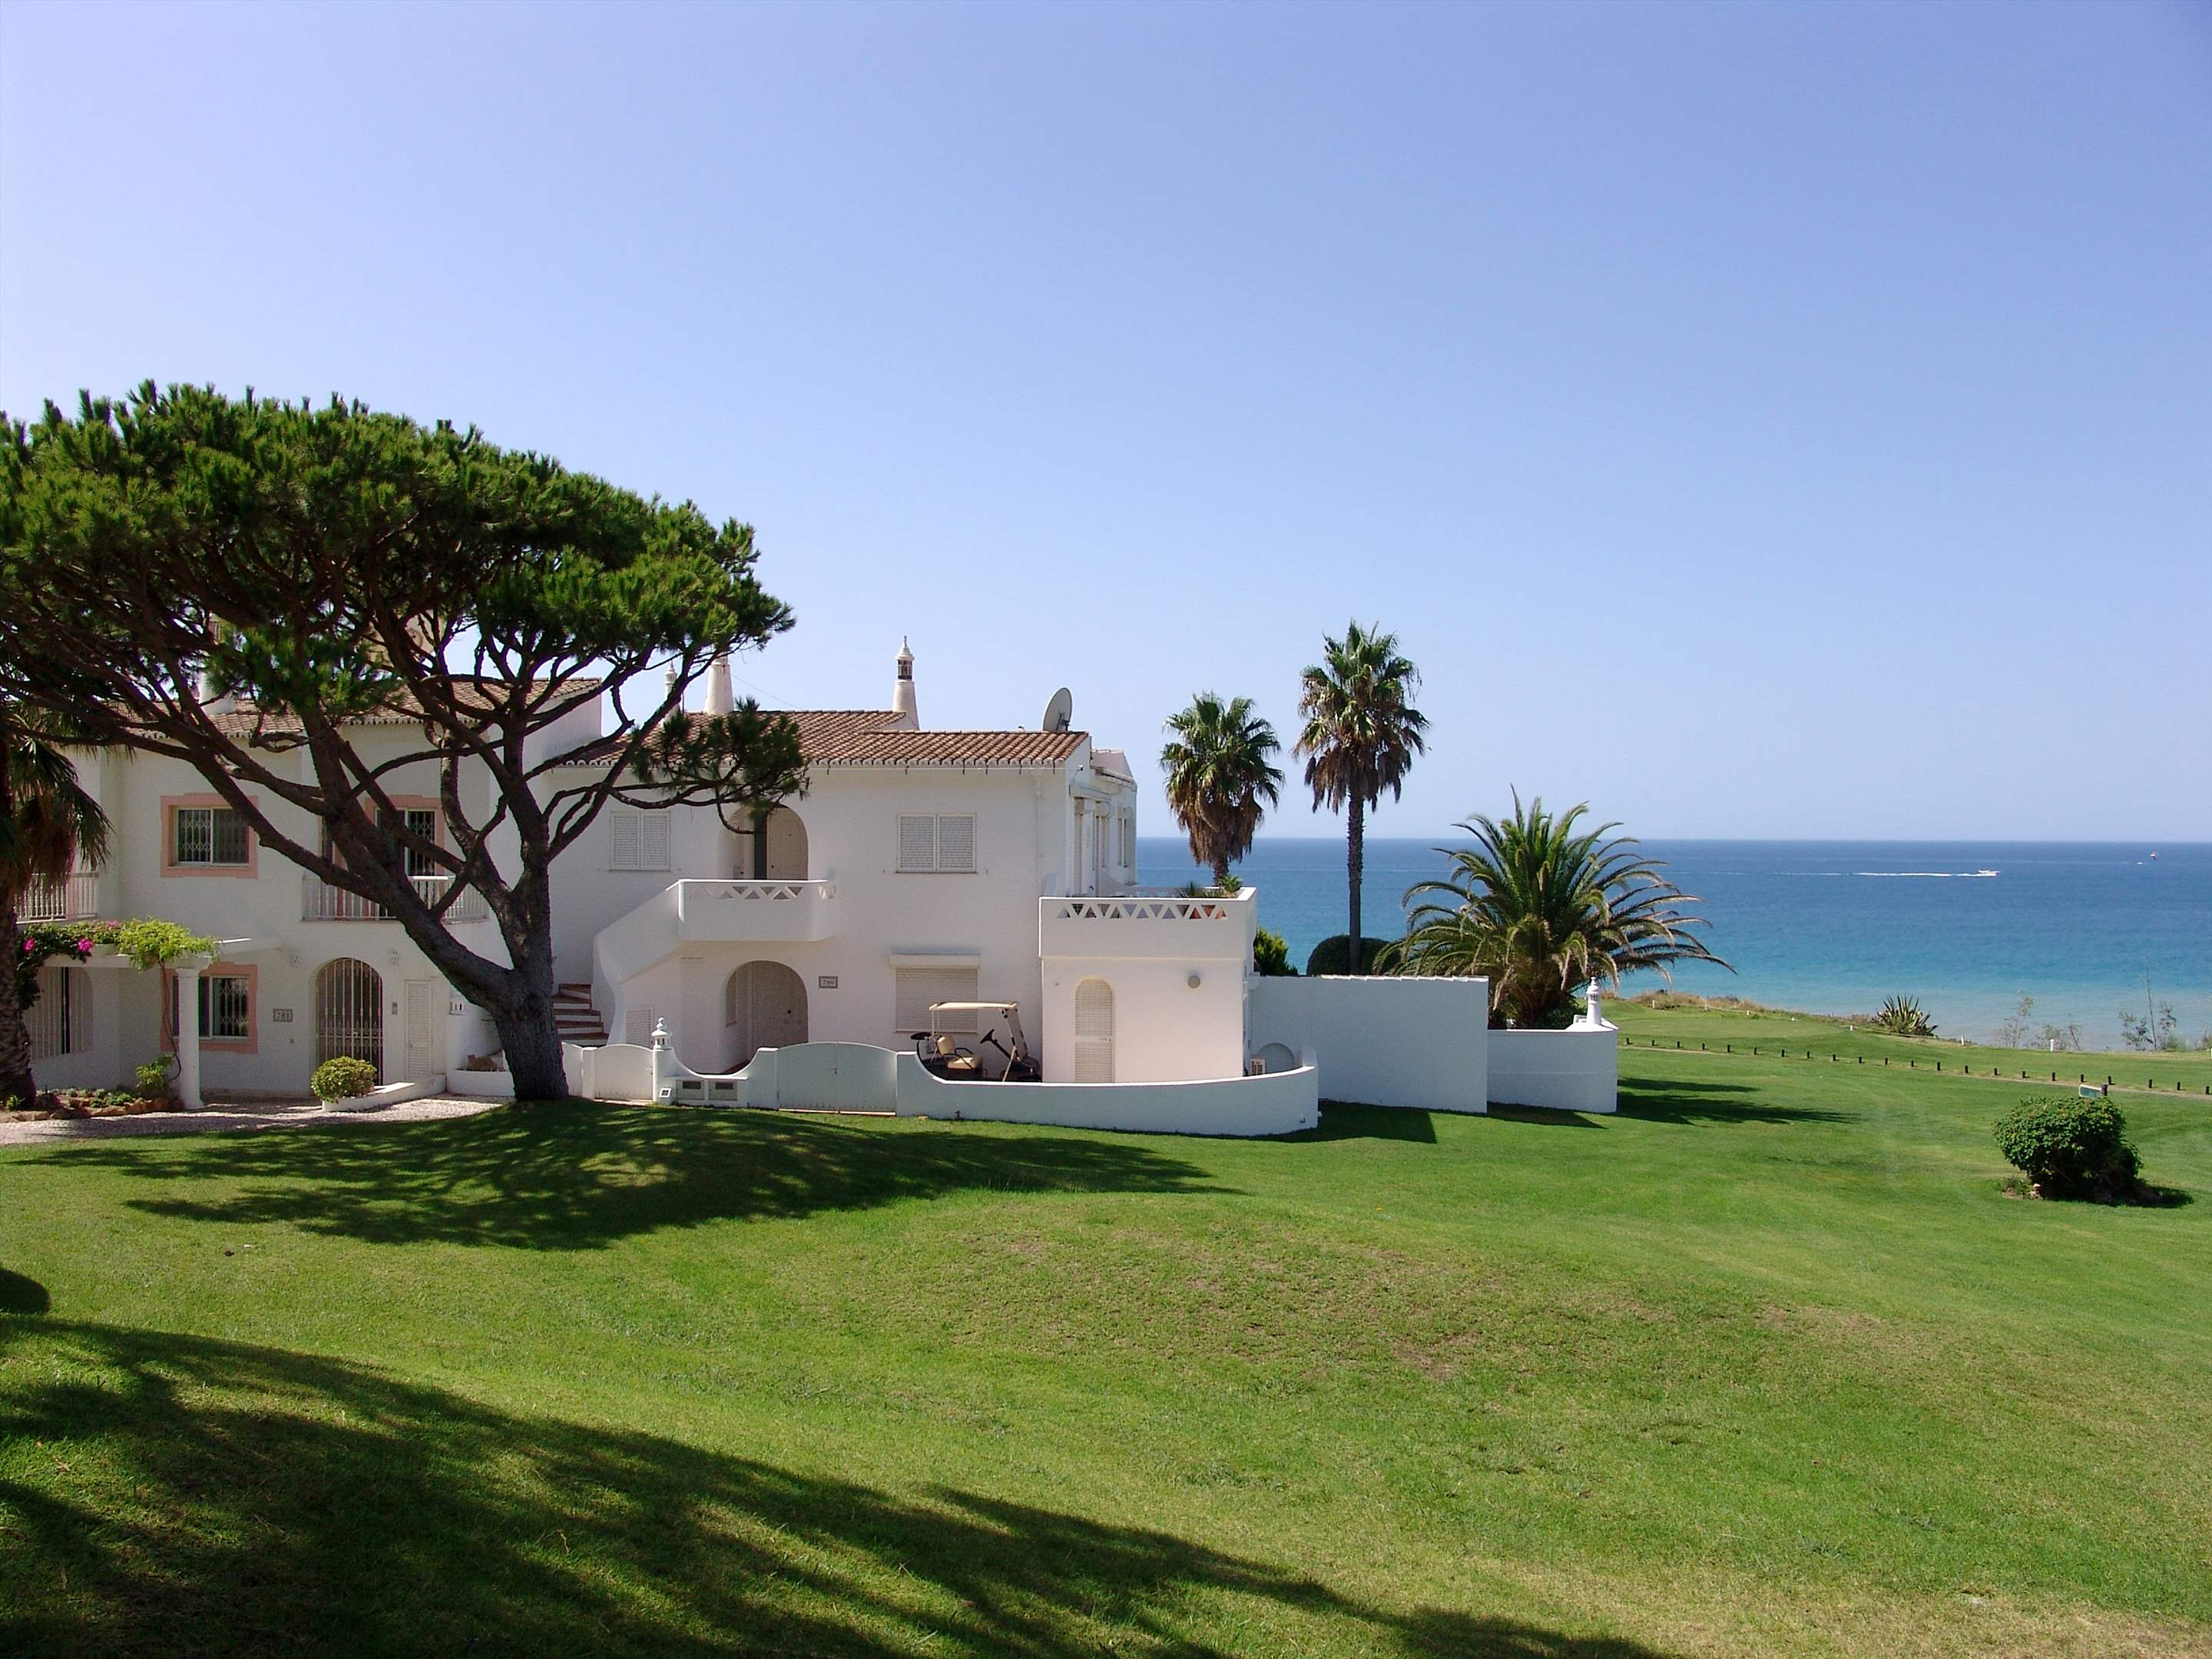 Villas Louisa, 4 Bedroom, 4 bedroom villa in Vale do Lobo, Algarve Photo #14